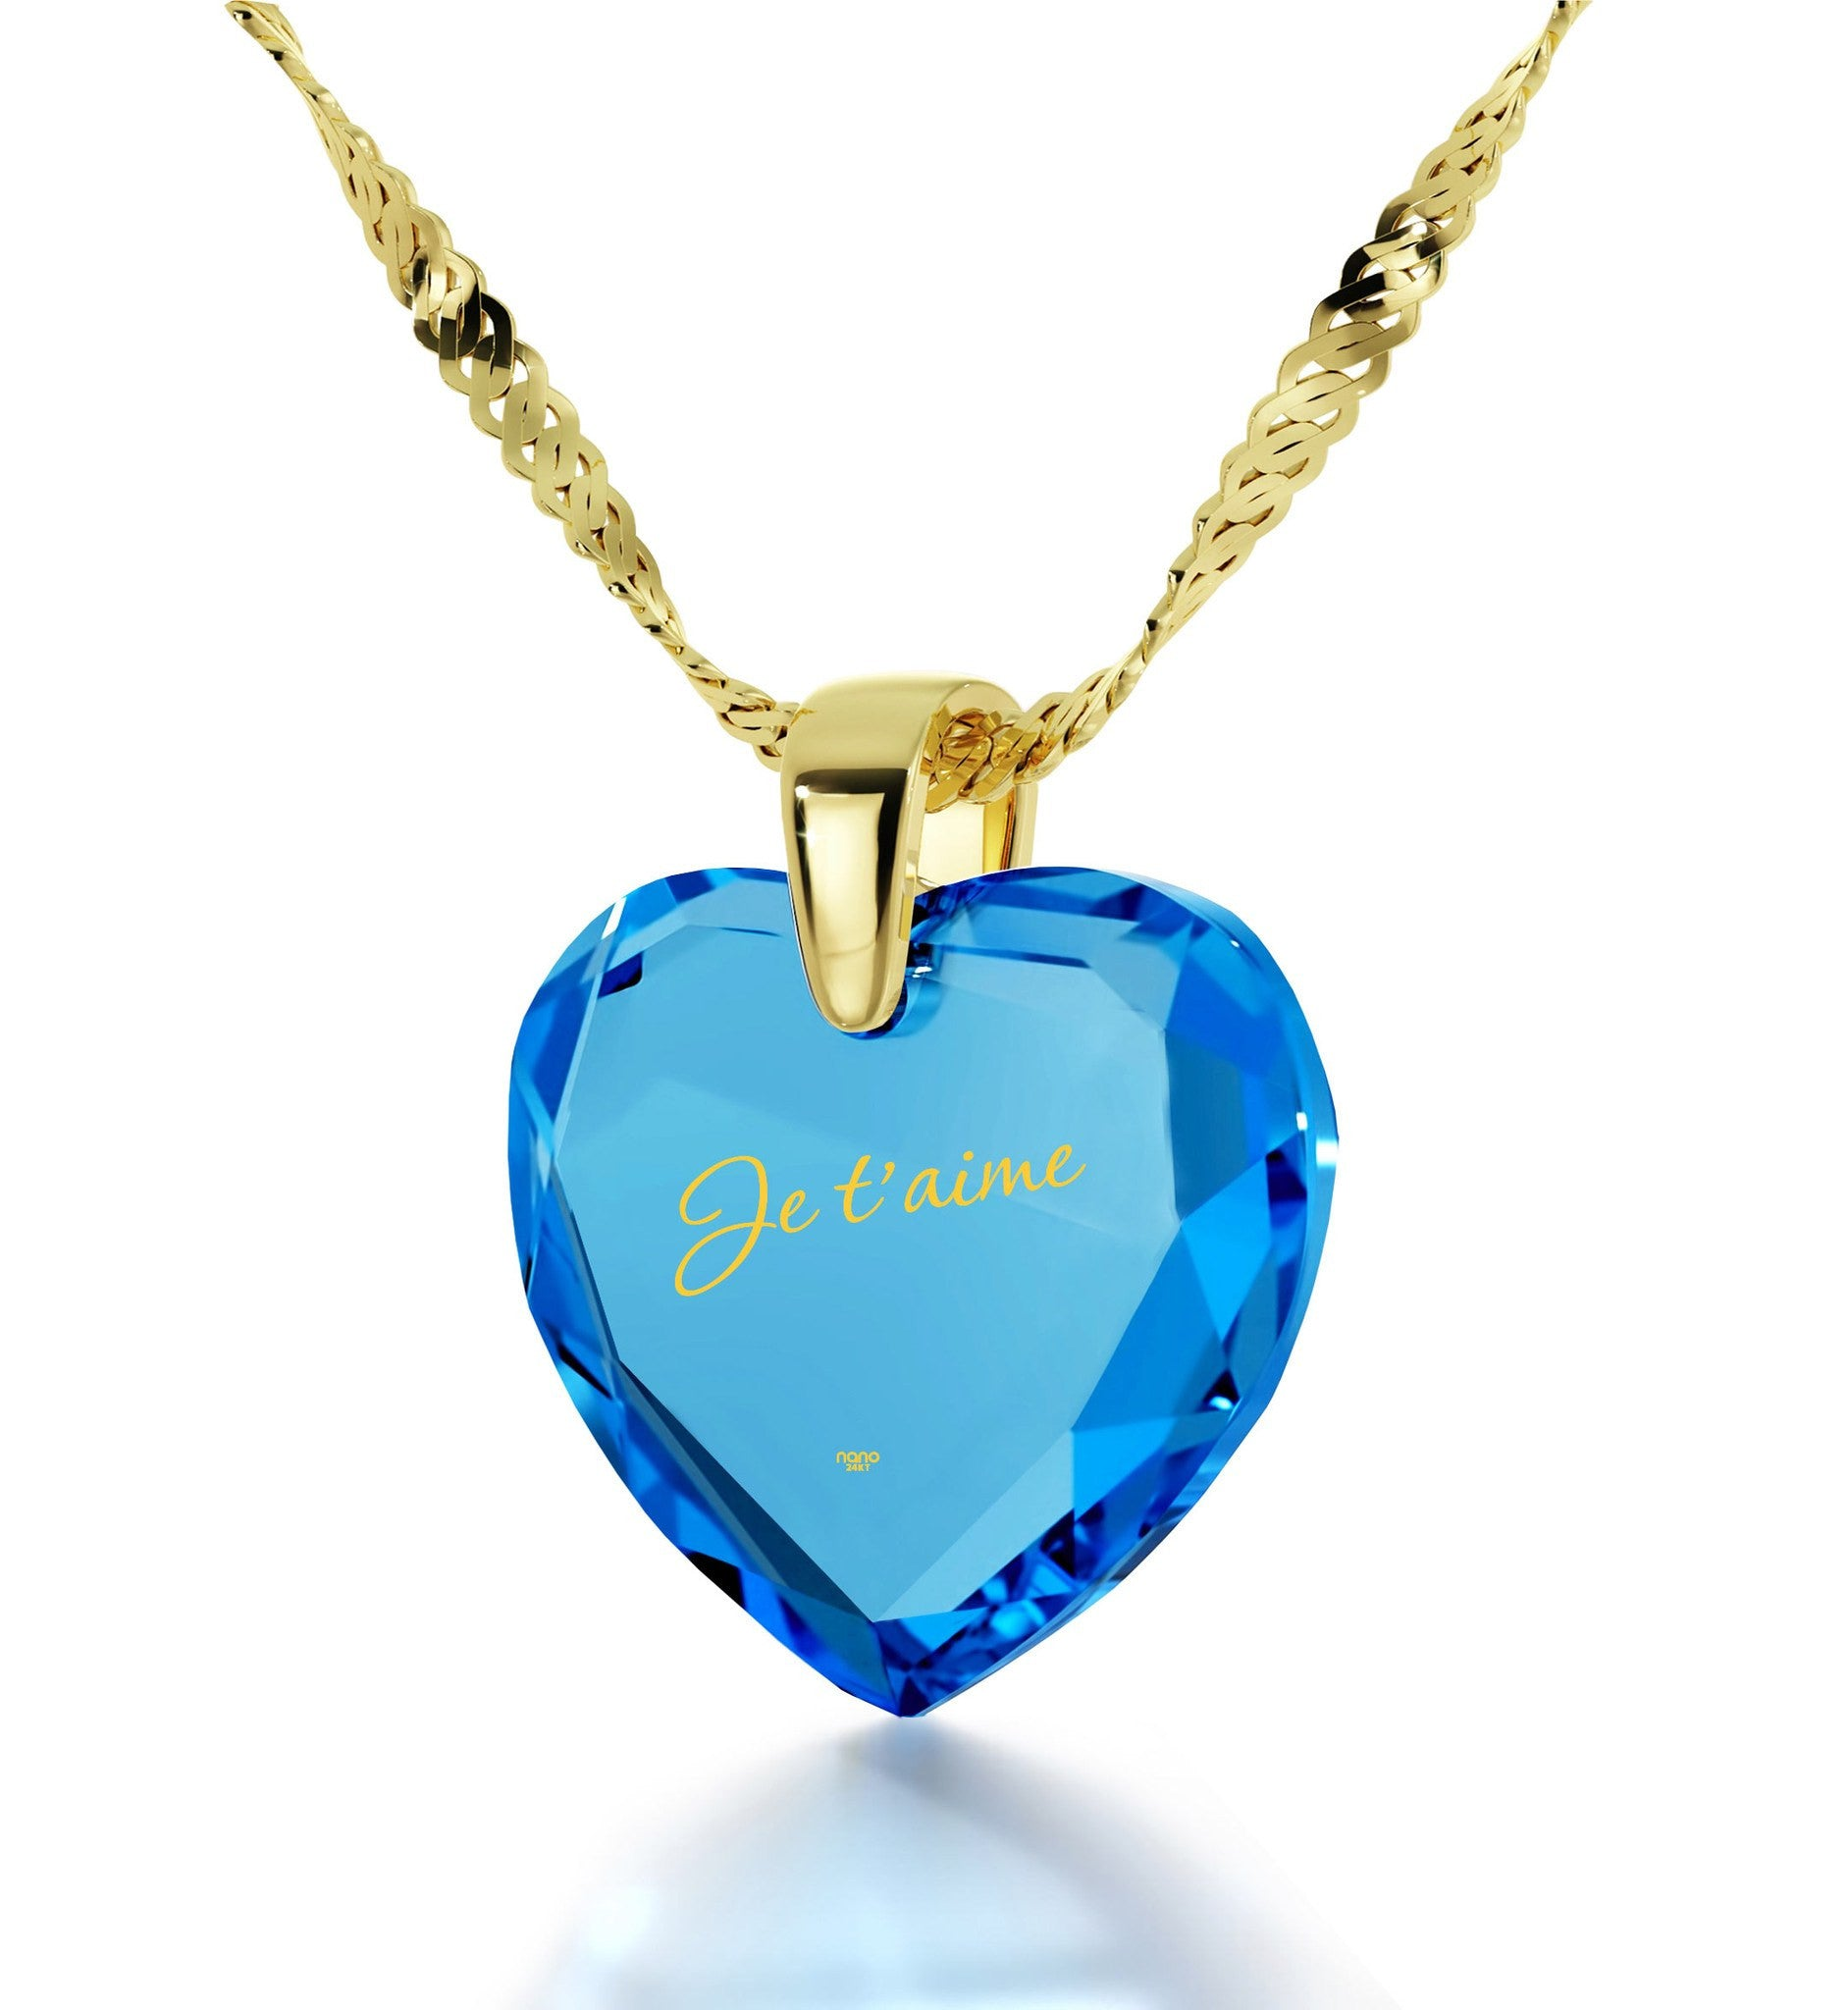 """Je T'aime"" - How to Say I Love You in French? Silver Necklace, Romantic Gifts for Her"